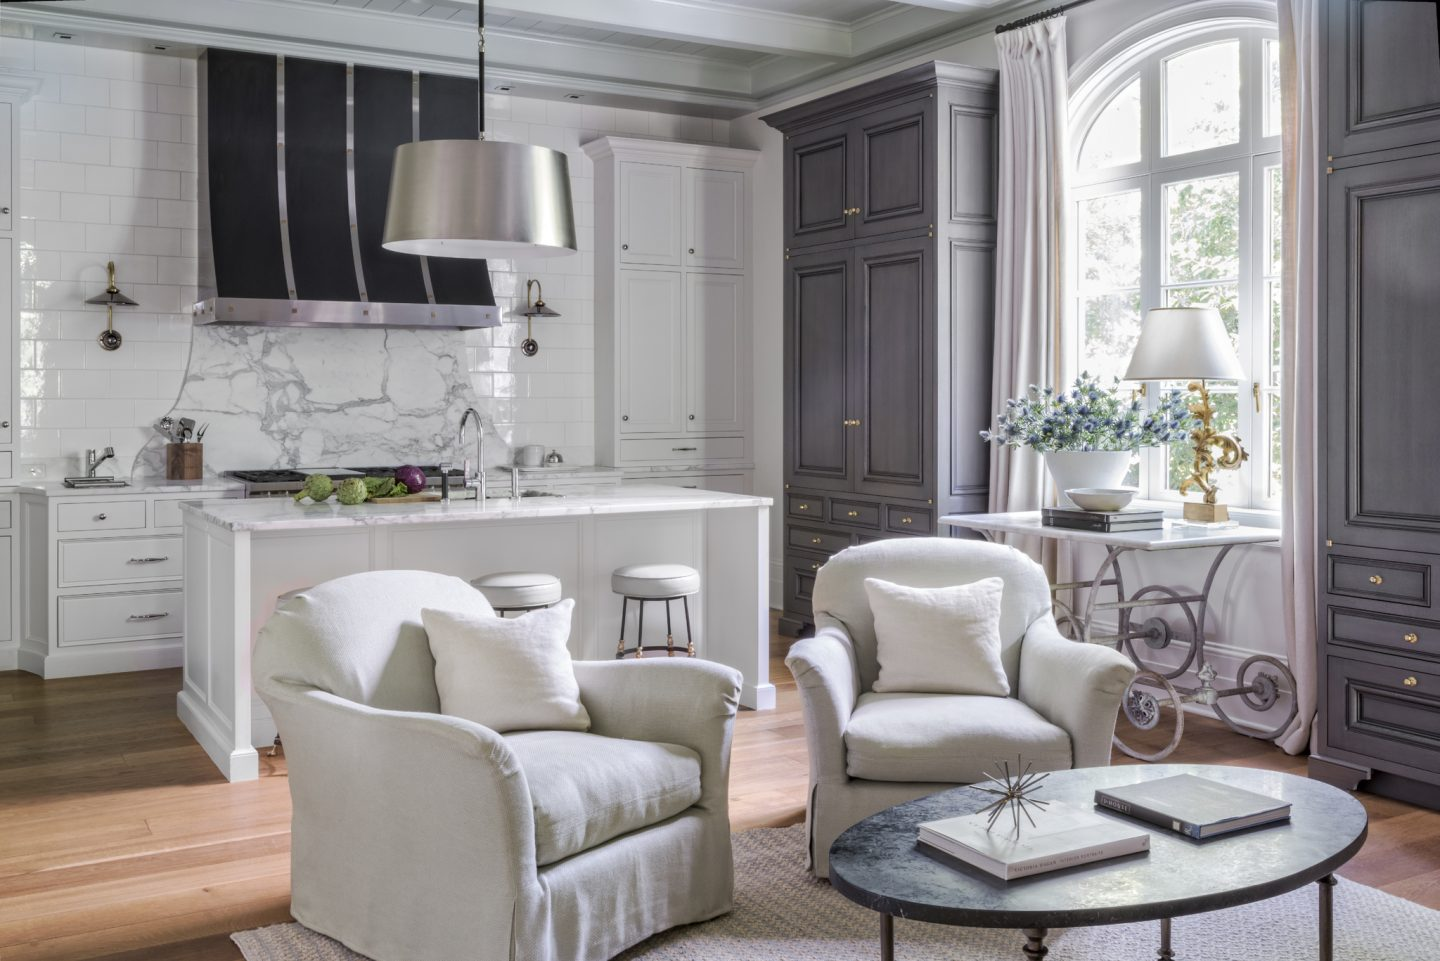 A tailored white kitchen with design by Suzanne Kasler. White walls and weathered grayarmoires. Custom black hood with metallic detail over range. The French pastry table was found at 1stdibs. Belgian chairs in rustic linen. #suzannekasler #kitchen #sophisticateddecor #elegantdecor #interiordesign